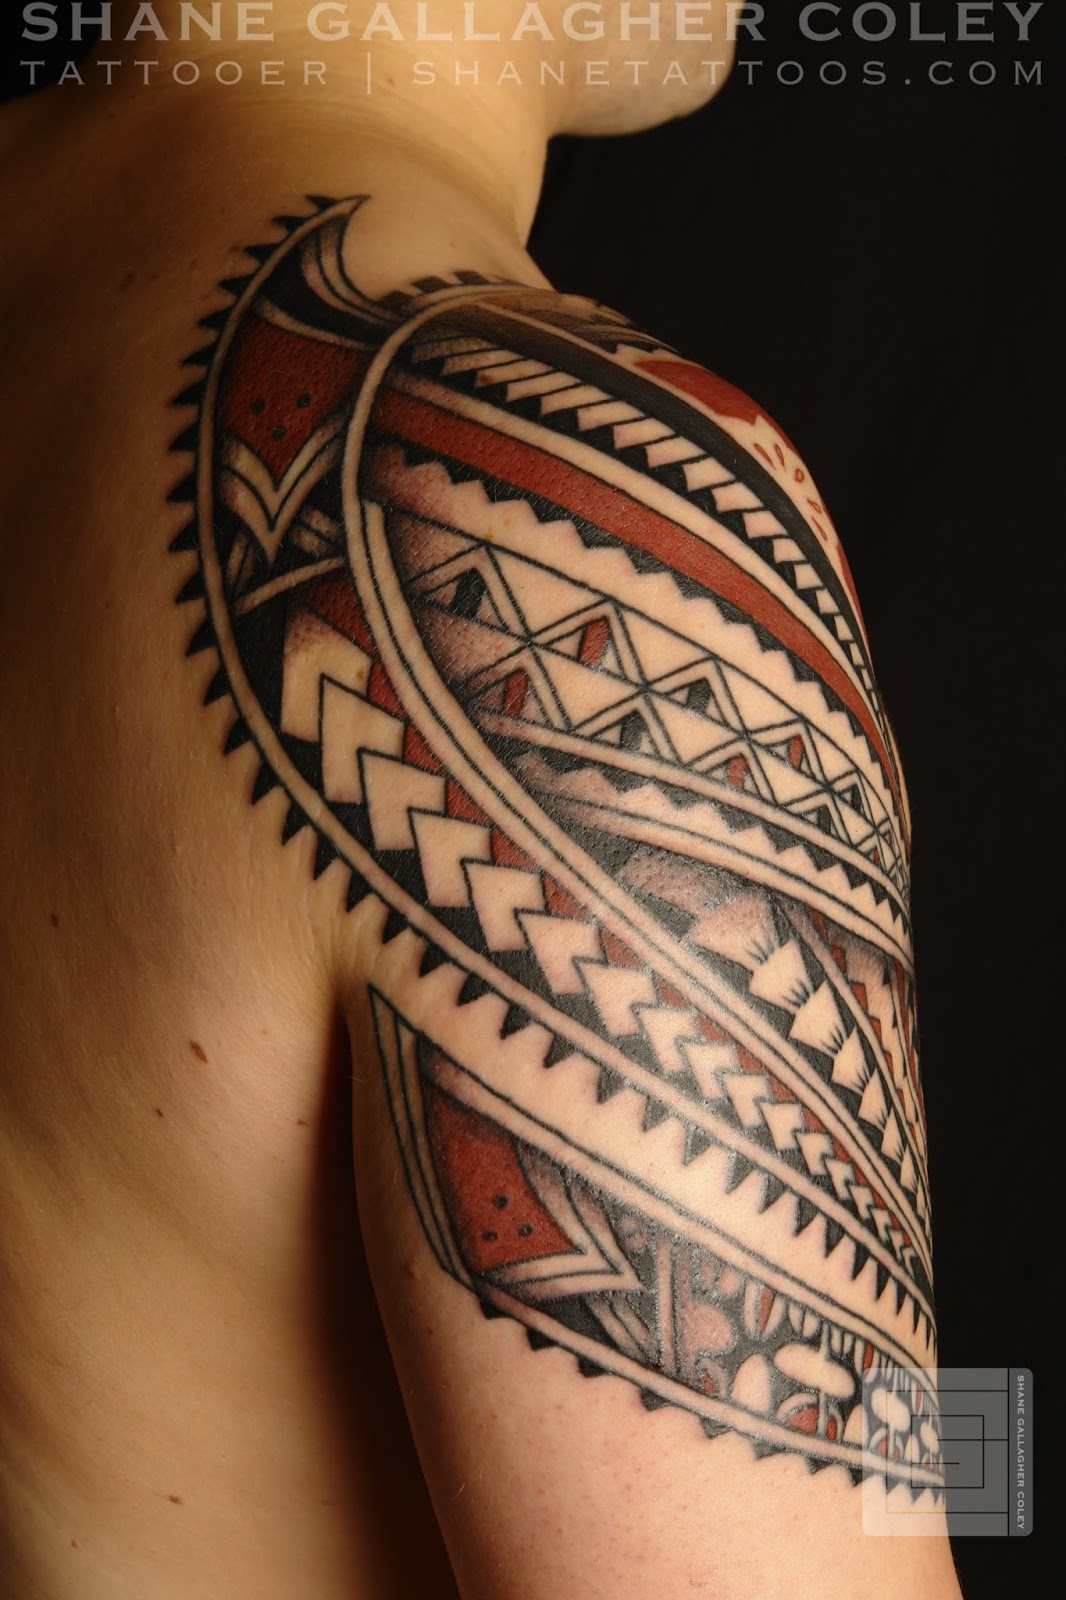 For Polynesian shoulder tattoos for men have